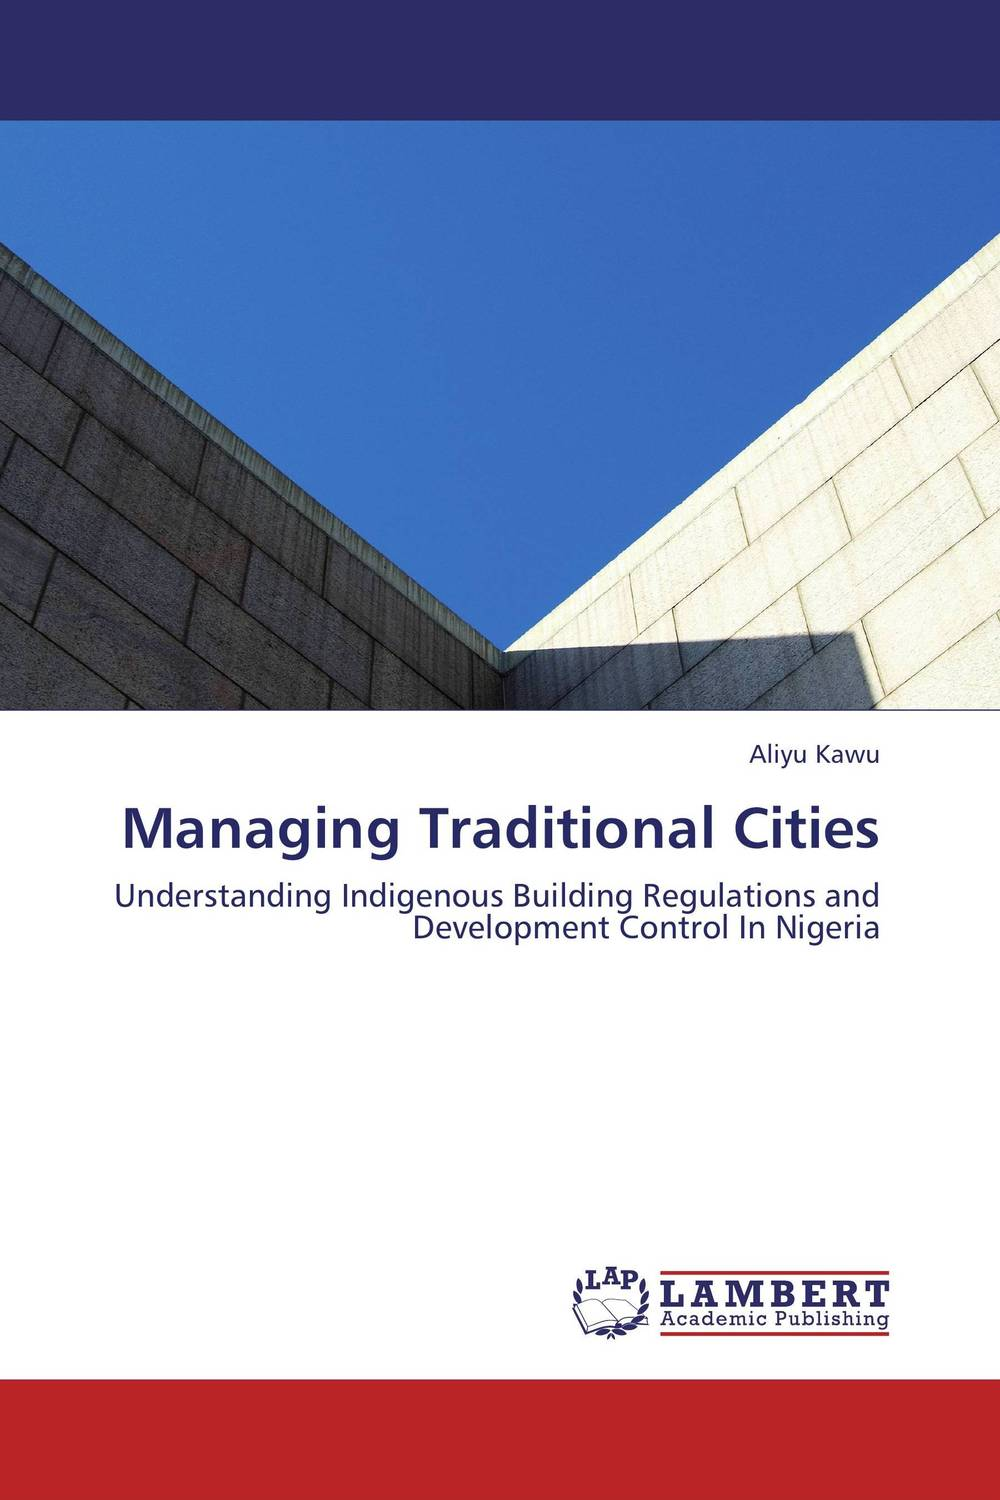 Managing Traditional Cities alison green managing to change the world the nonprofit manager s guide to getting results